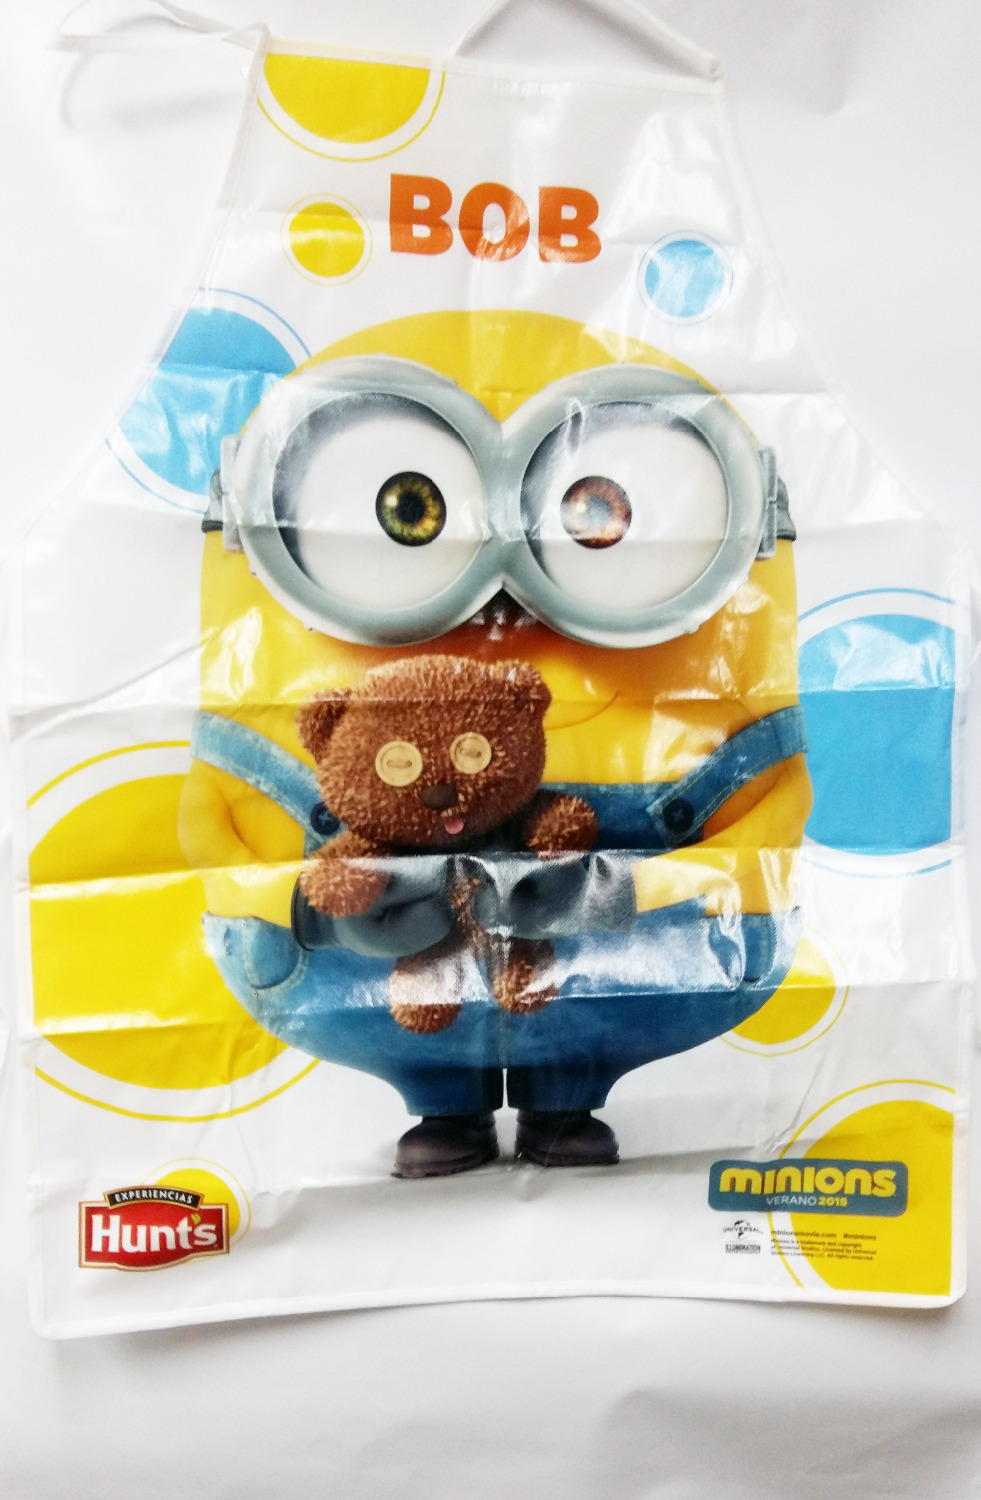 Aprons Wholesale Teddybear Despicable Me2 Minions Funny Novelty Kids Children Kitchen Cook Waterproof Aprons Painting Cleaning Apron Colours Are Striking